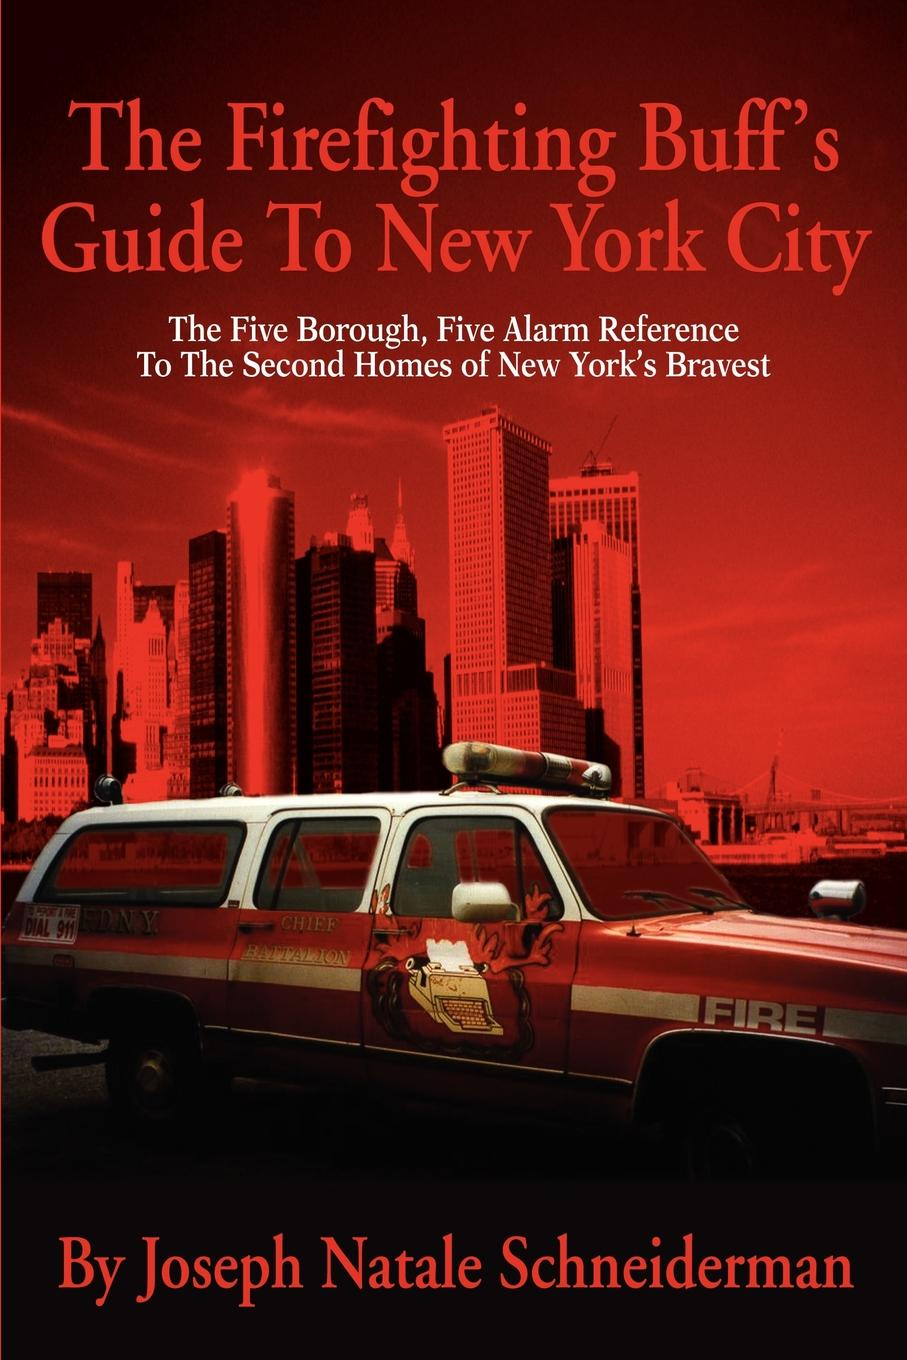 Joseph Natale Schneiderman The Firefighting Buff's Guide To New York City. The Five Borough, Five Alarm Reference To The Second Homes of New York's Bravest